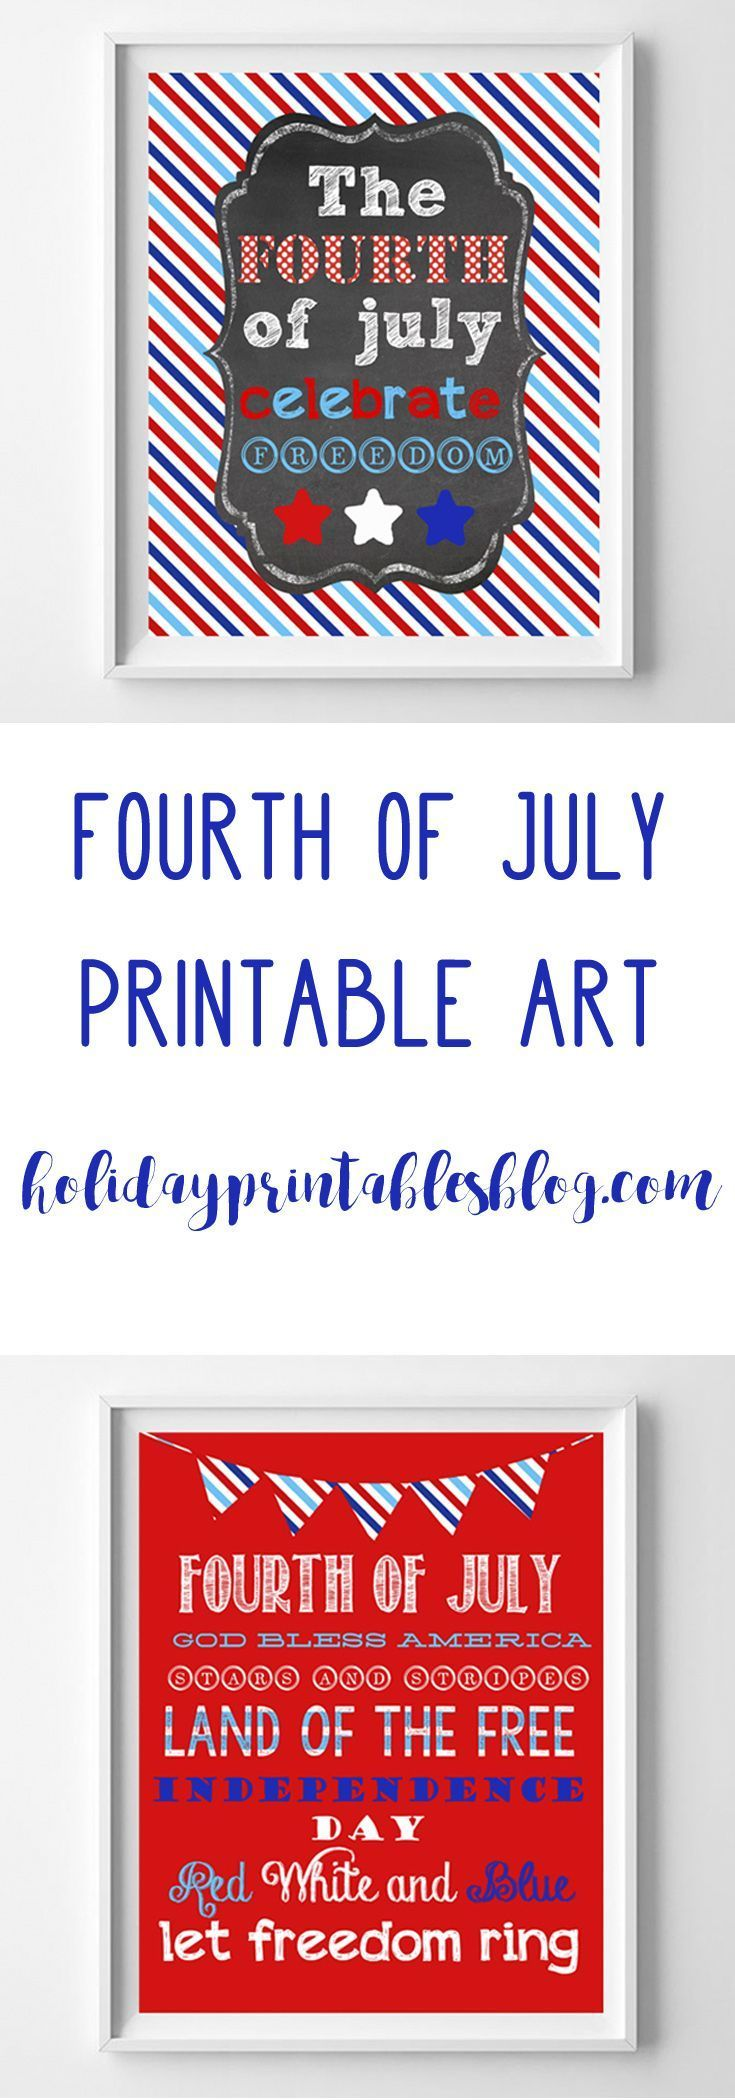 July Fourth Free Printables   Free Printable Art   Fourth July Tablescape Decor   Red White Blue   Wall Art Ideas